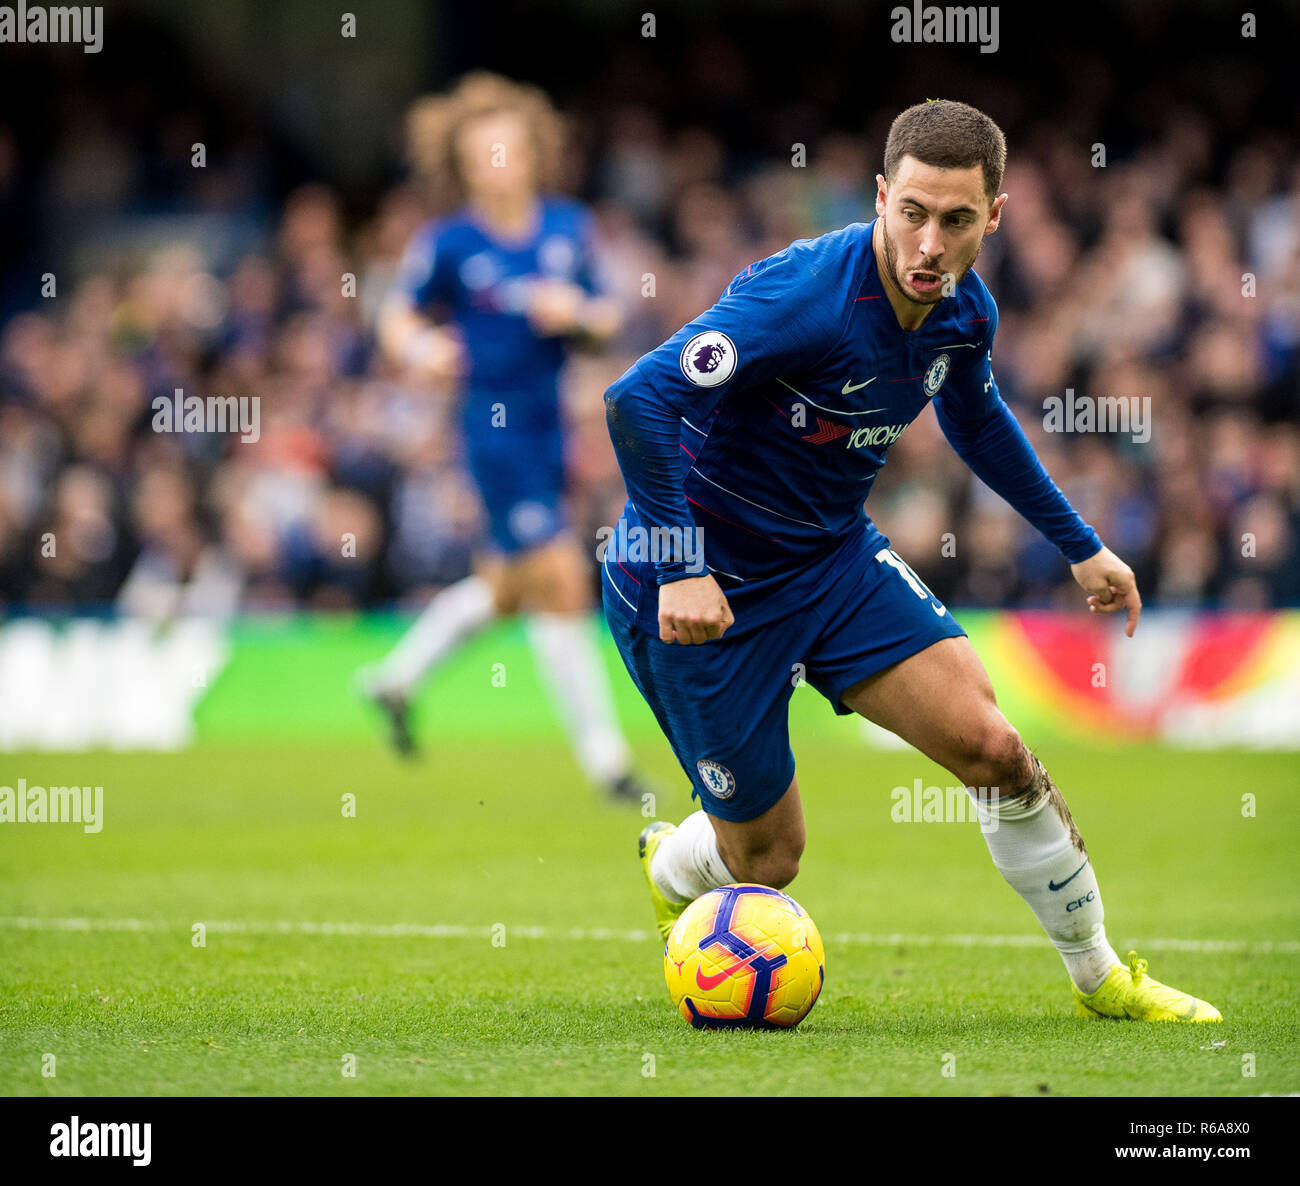 LONDON, ENGLAND - DECEMBER 02: Eden Hazard of Chelsea FC control ball during the Premier League match between Chelsea FC and Fulham FC at Stamford Bridge on December 2, 2018 in London, United Kingdom. (Photo by Sebastian Frej/MB Media/Getty Images) - Stock Image